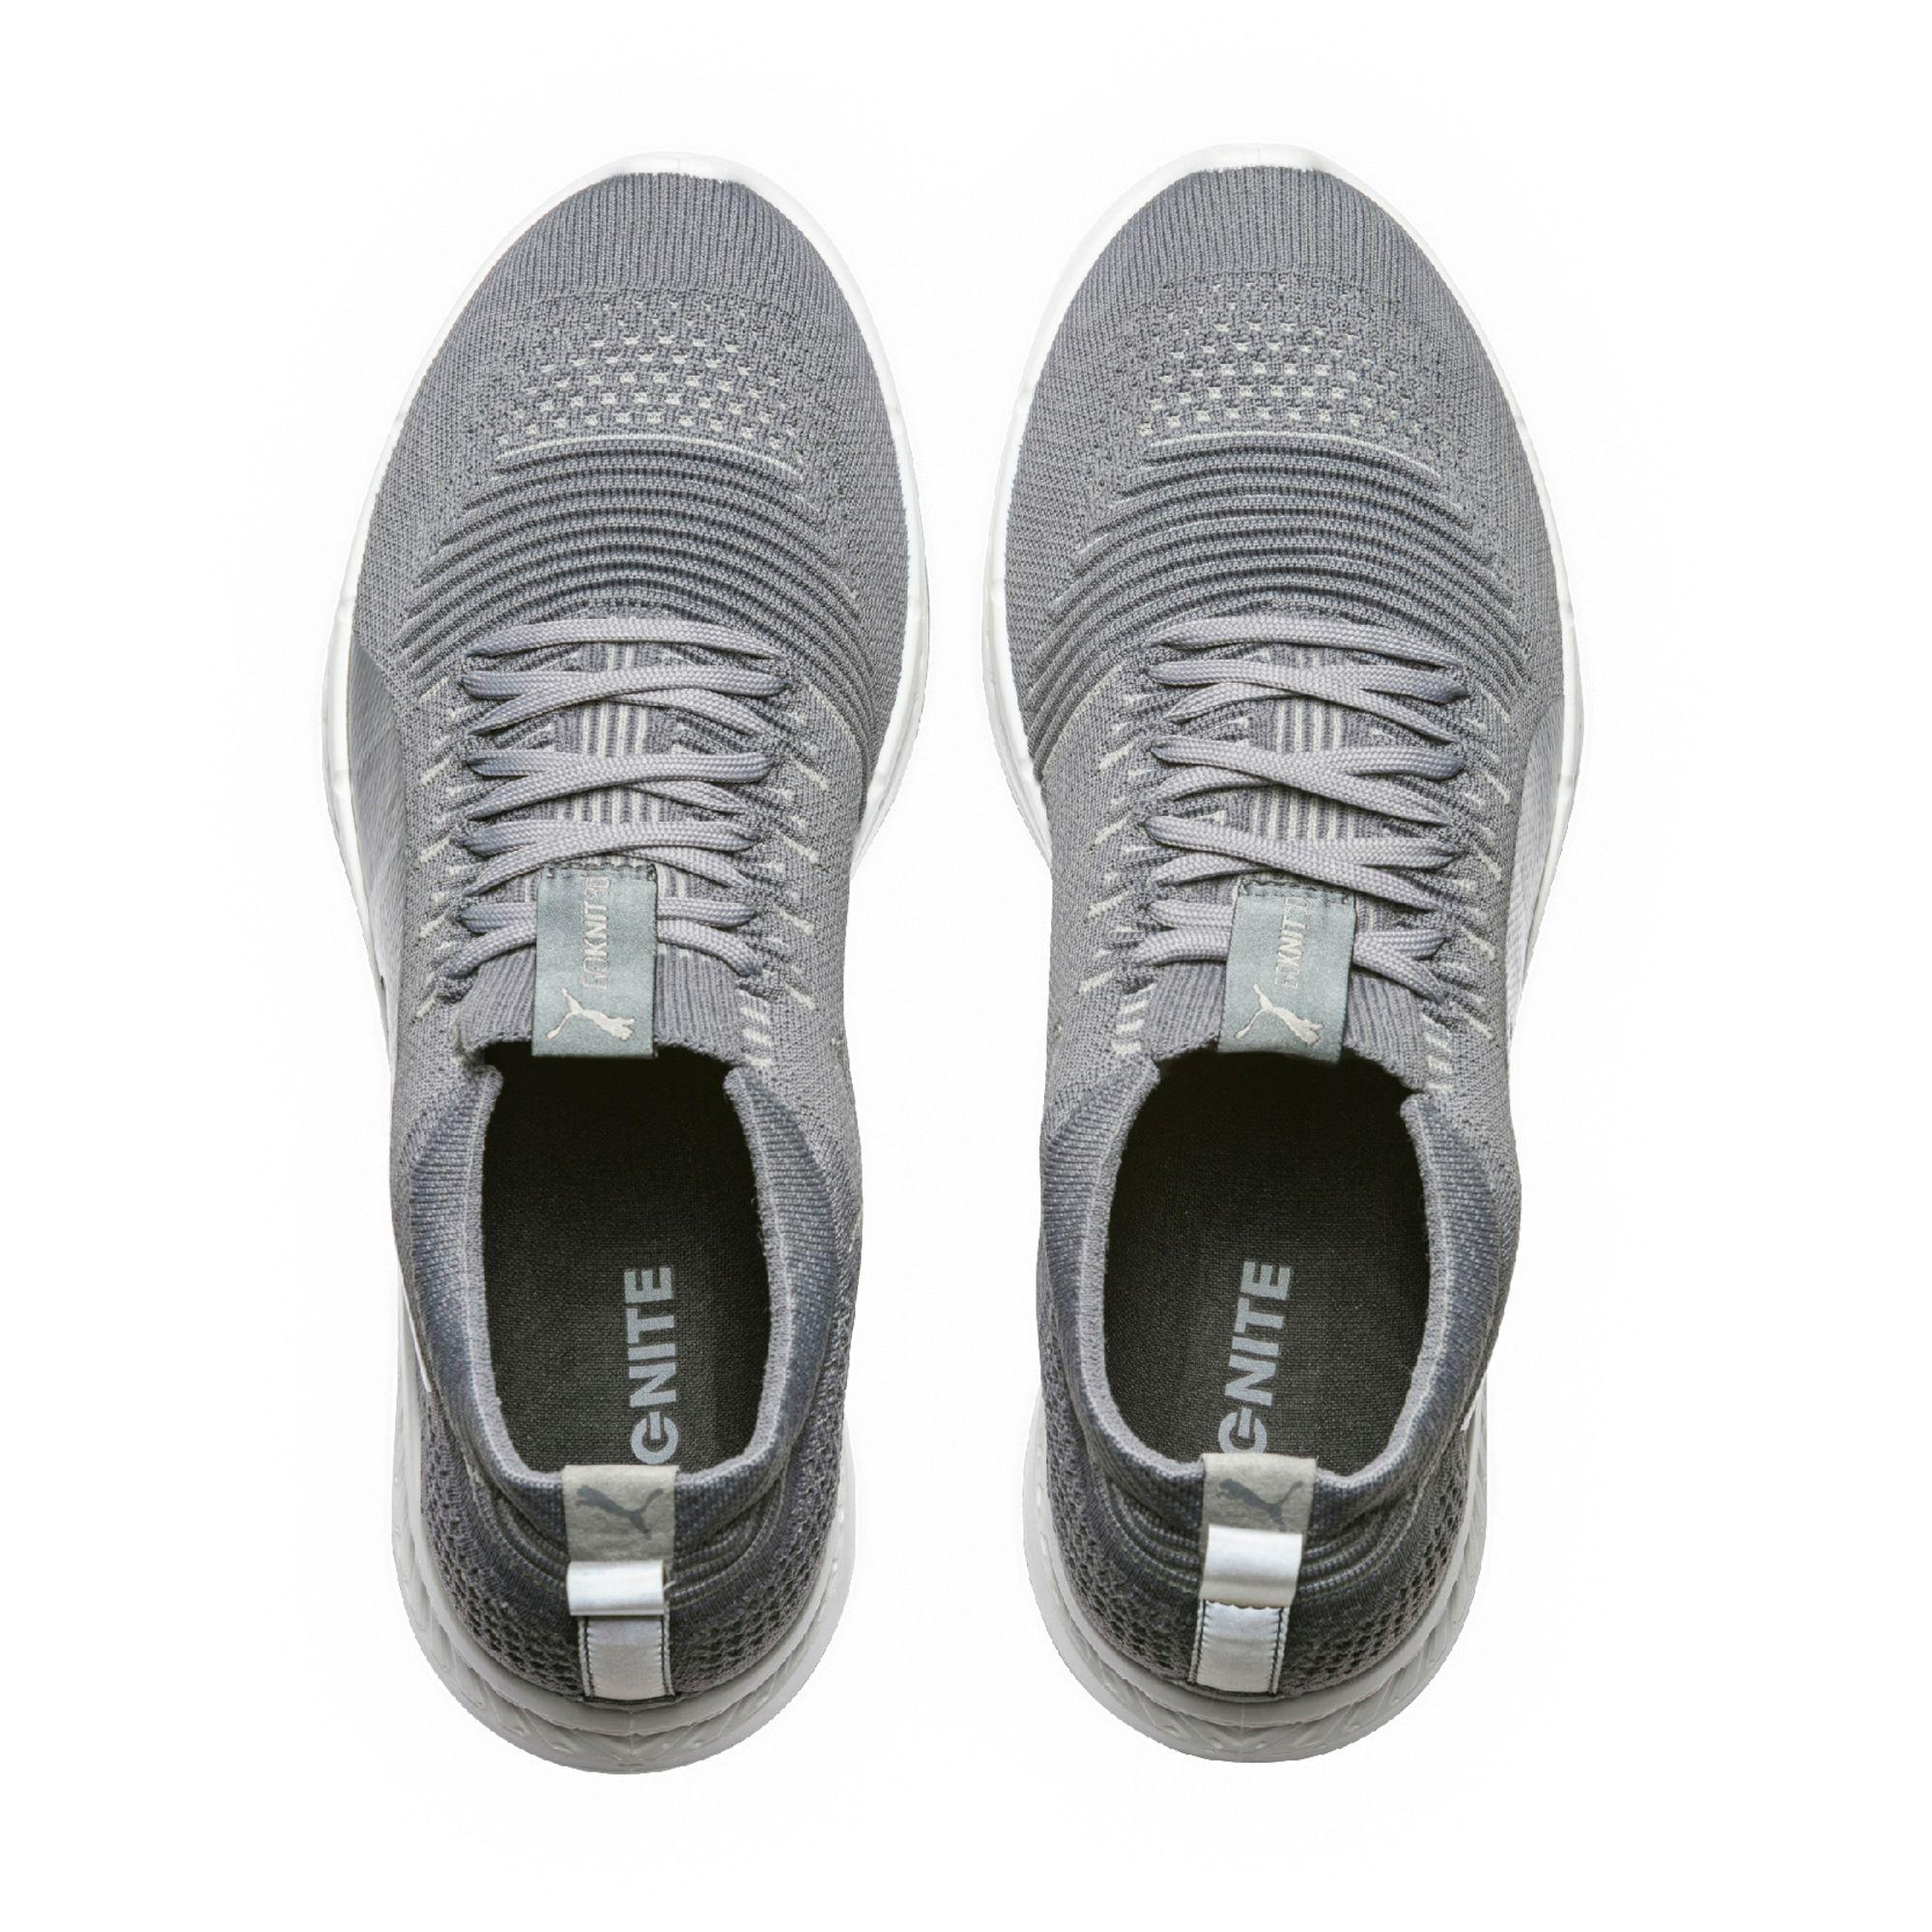 1fe56034eae Lyst - PUMA Ignite Proknit Men s Running Shoes in Gray for Men